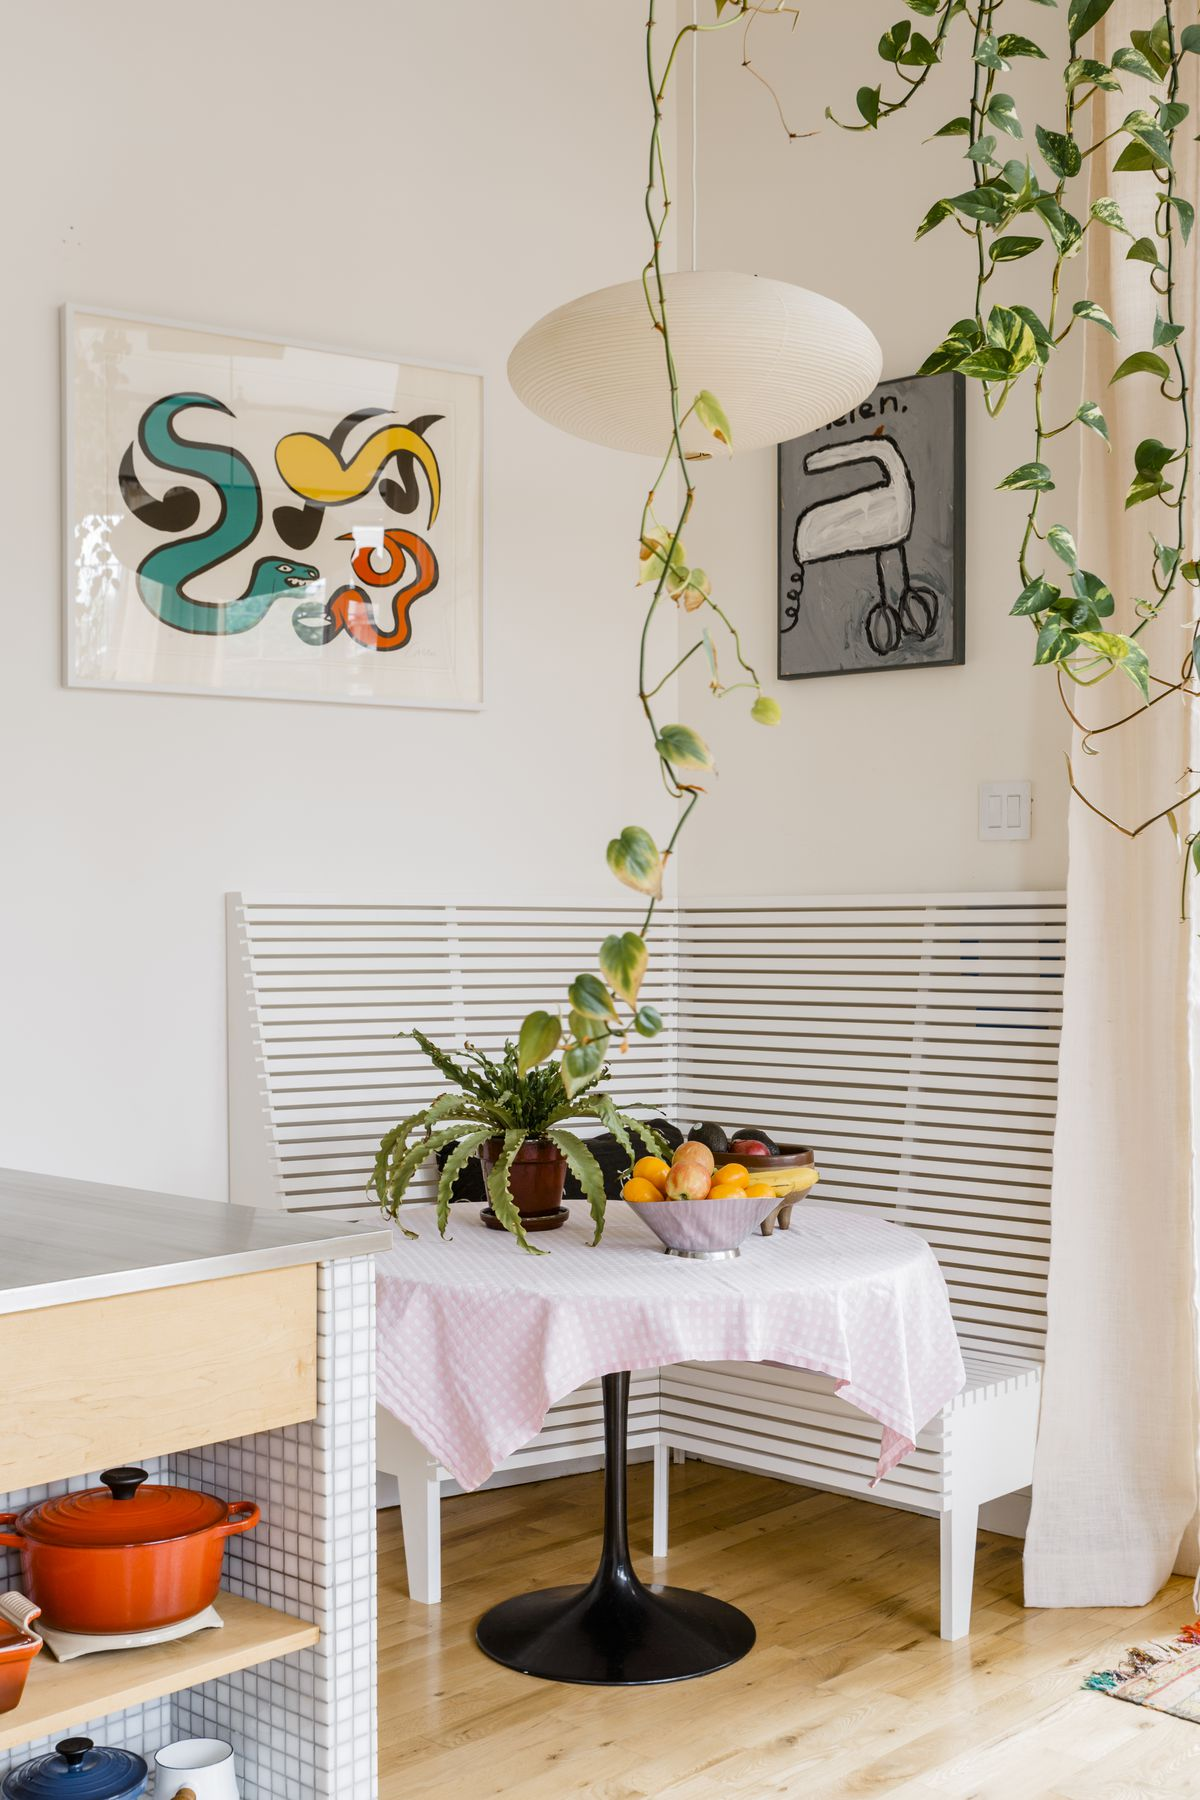 The corner of a kitchen with built in sitting booth and a table that has a basket of fruit on it . There are plants hanging from planters on the ceiling and multiple framed works of art on the wall.